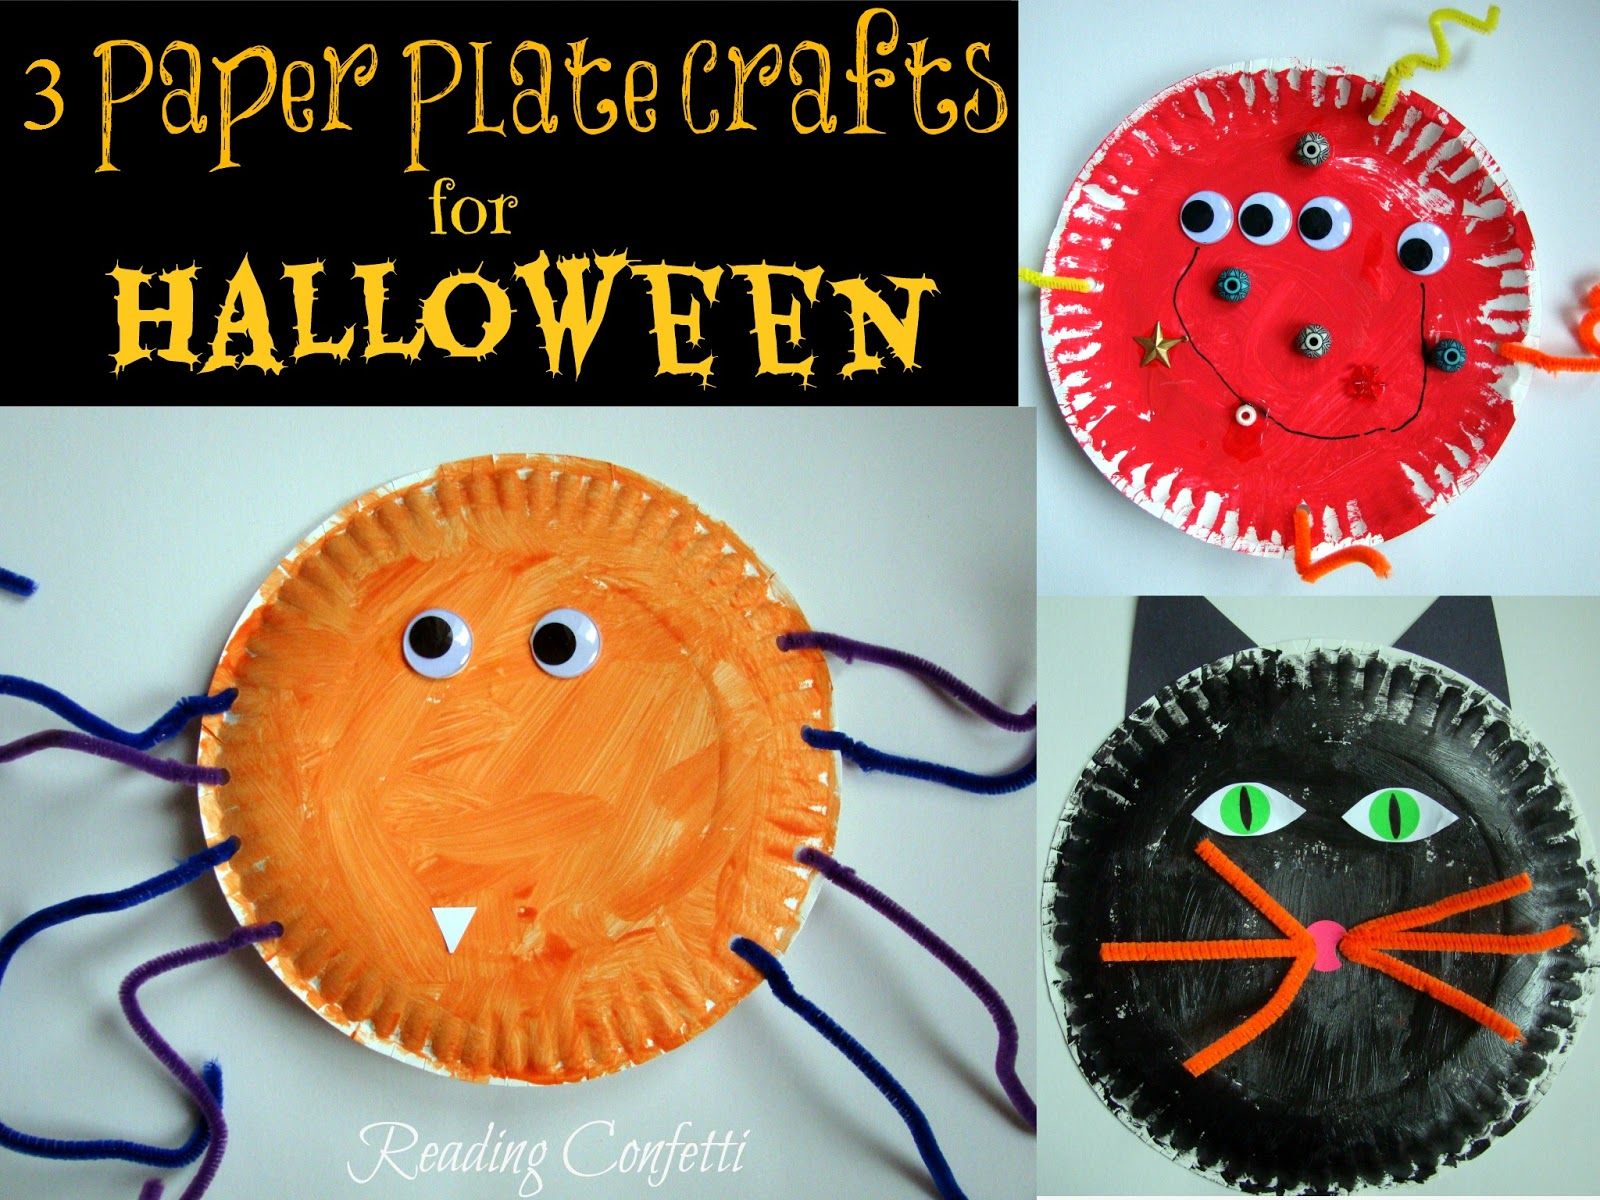 3 Paper Plate Crafts for Halloween ~ Reading Confetti